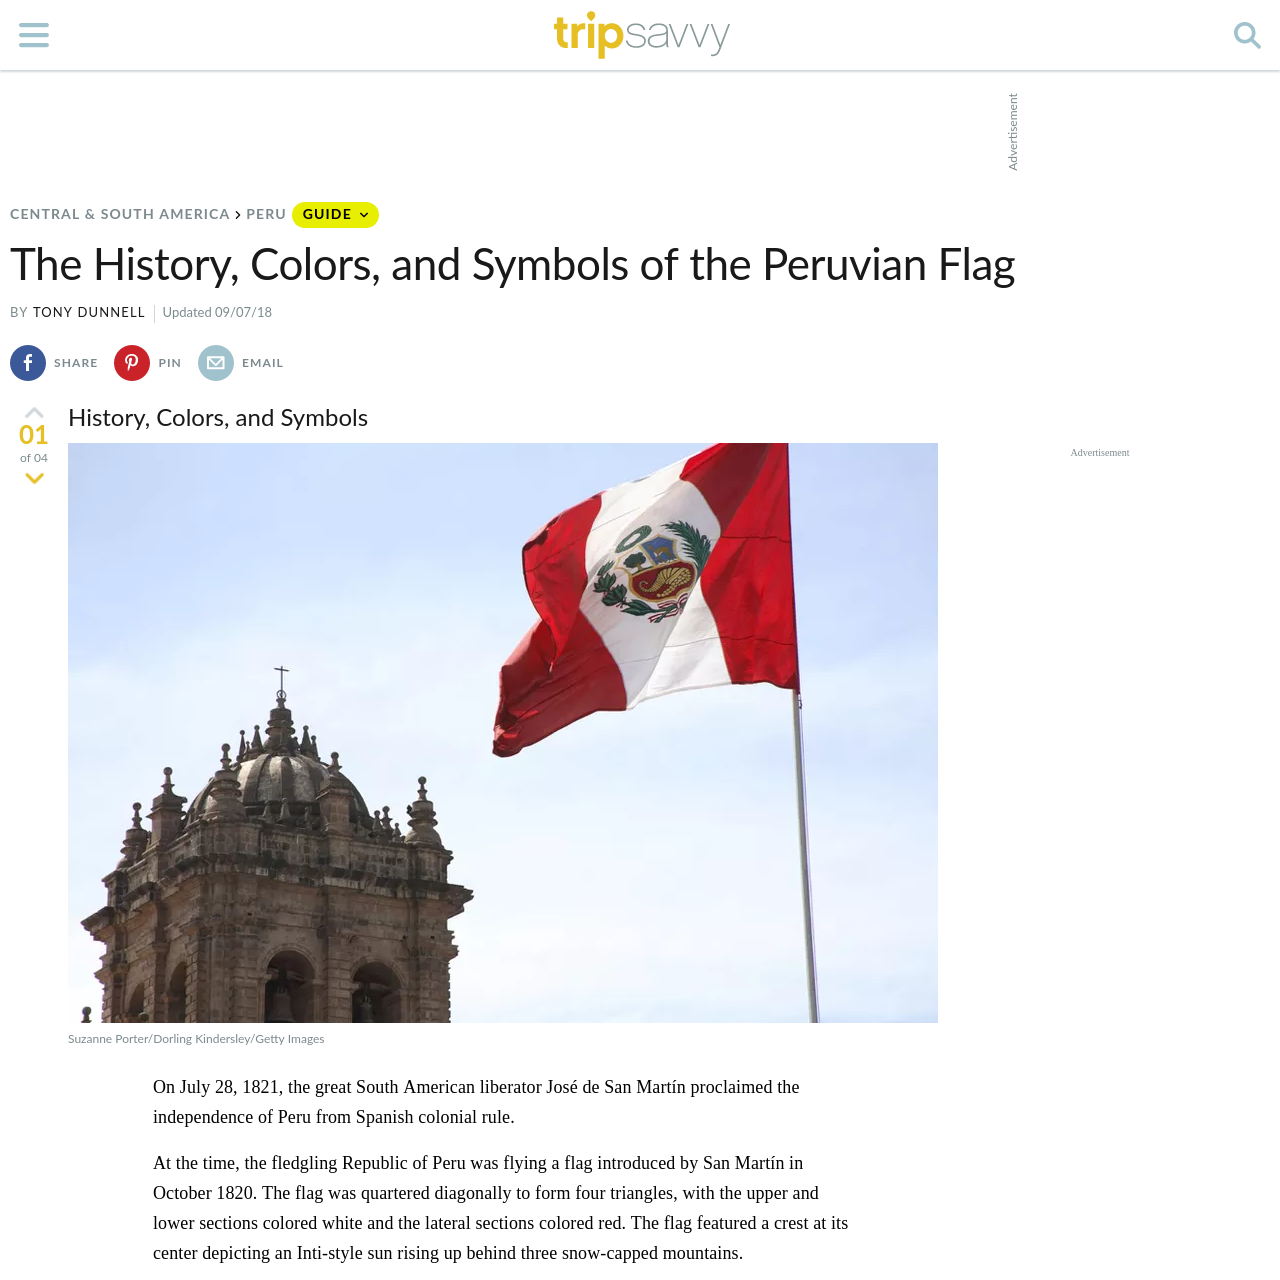 Are na / The History, Colors, and Symbols of the Peruvian Flag